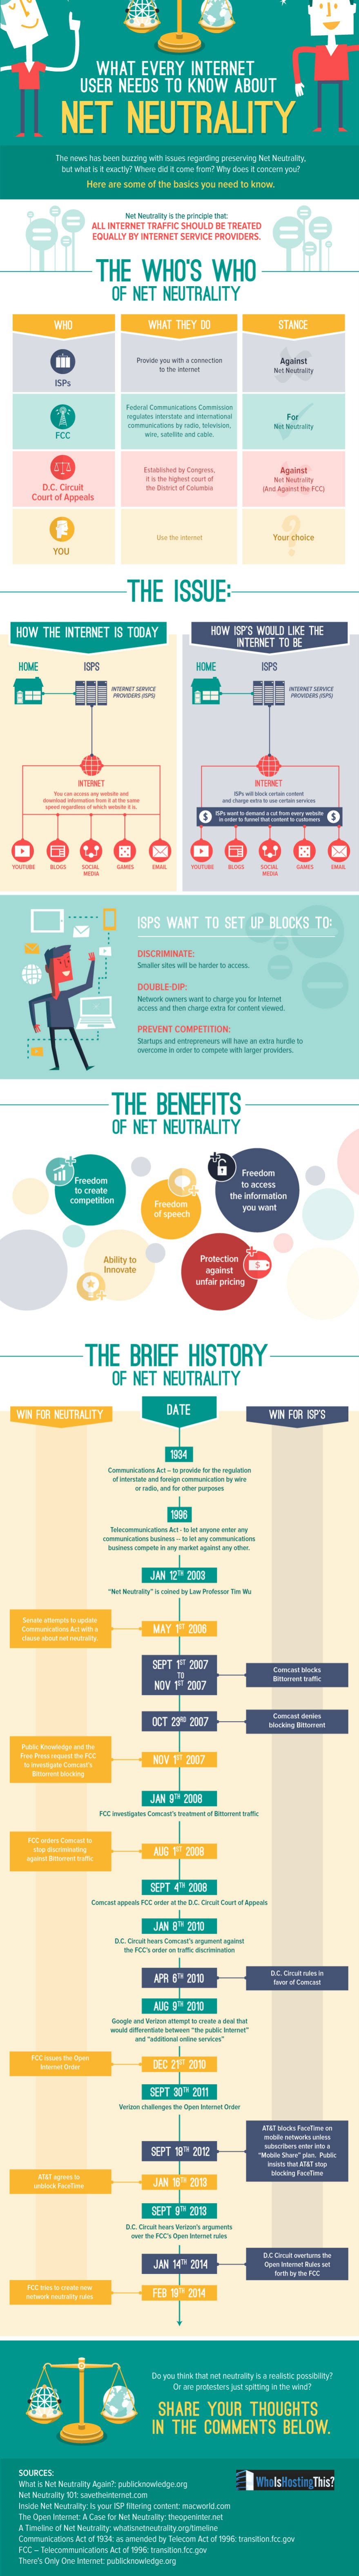 The End Of Net Neutrality: Things You Should Know About It - infographic #datavisualization